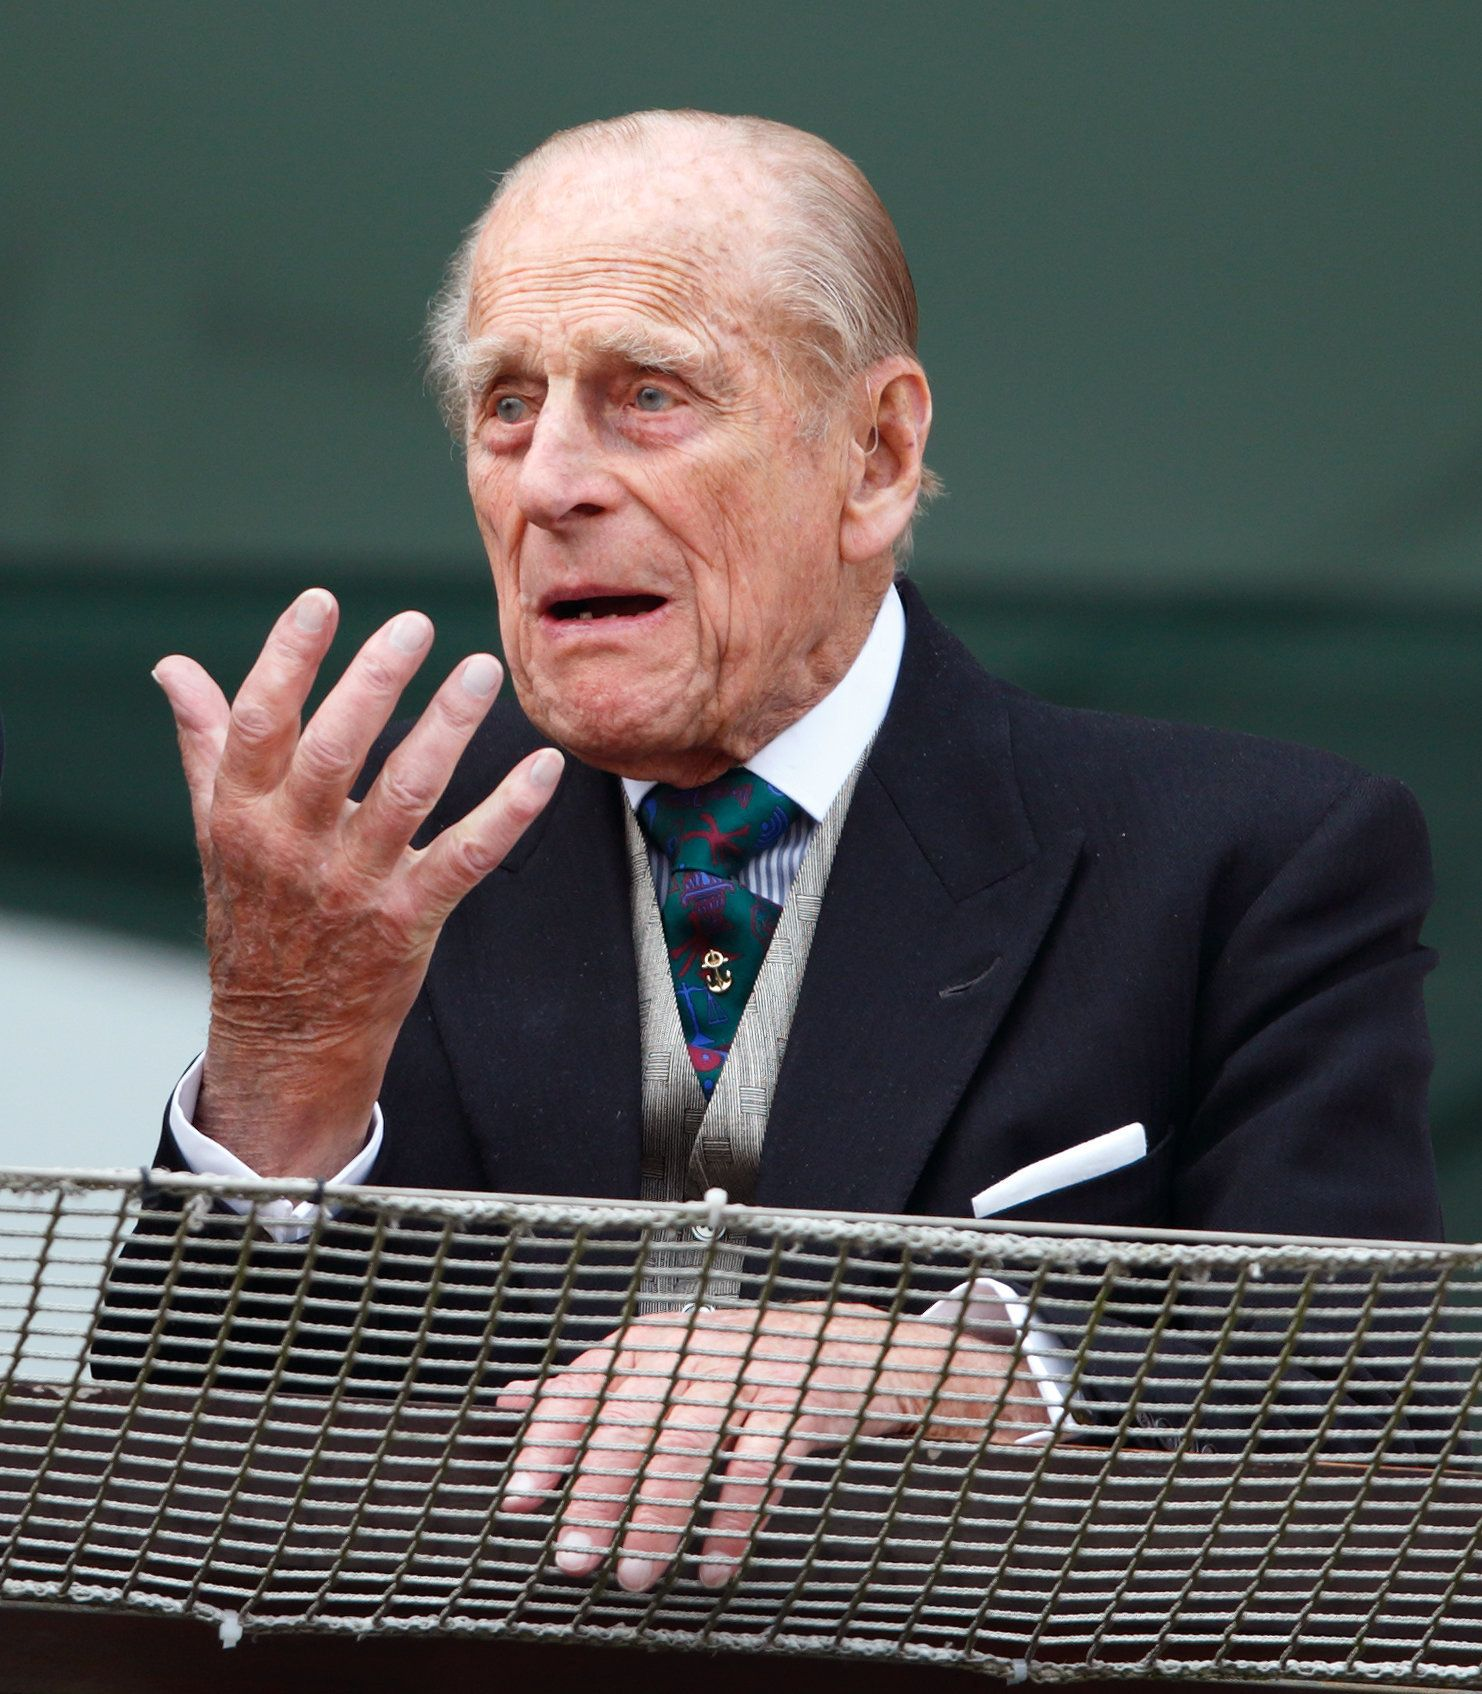 Our Prince Philip Quiz Will Leave You Struggling To Tell Fact From